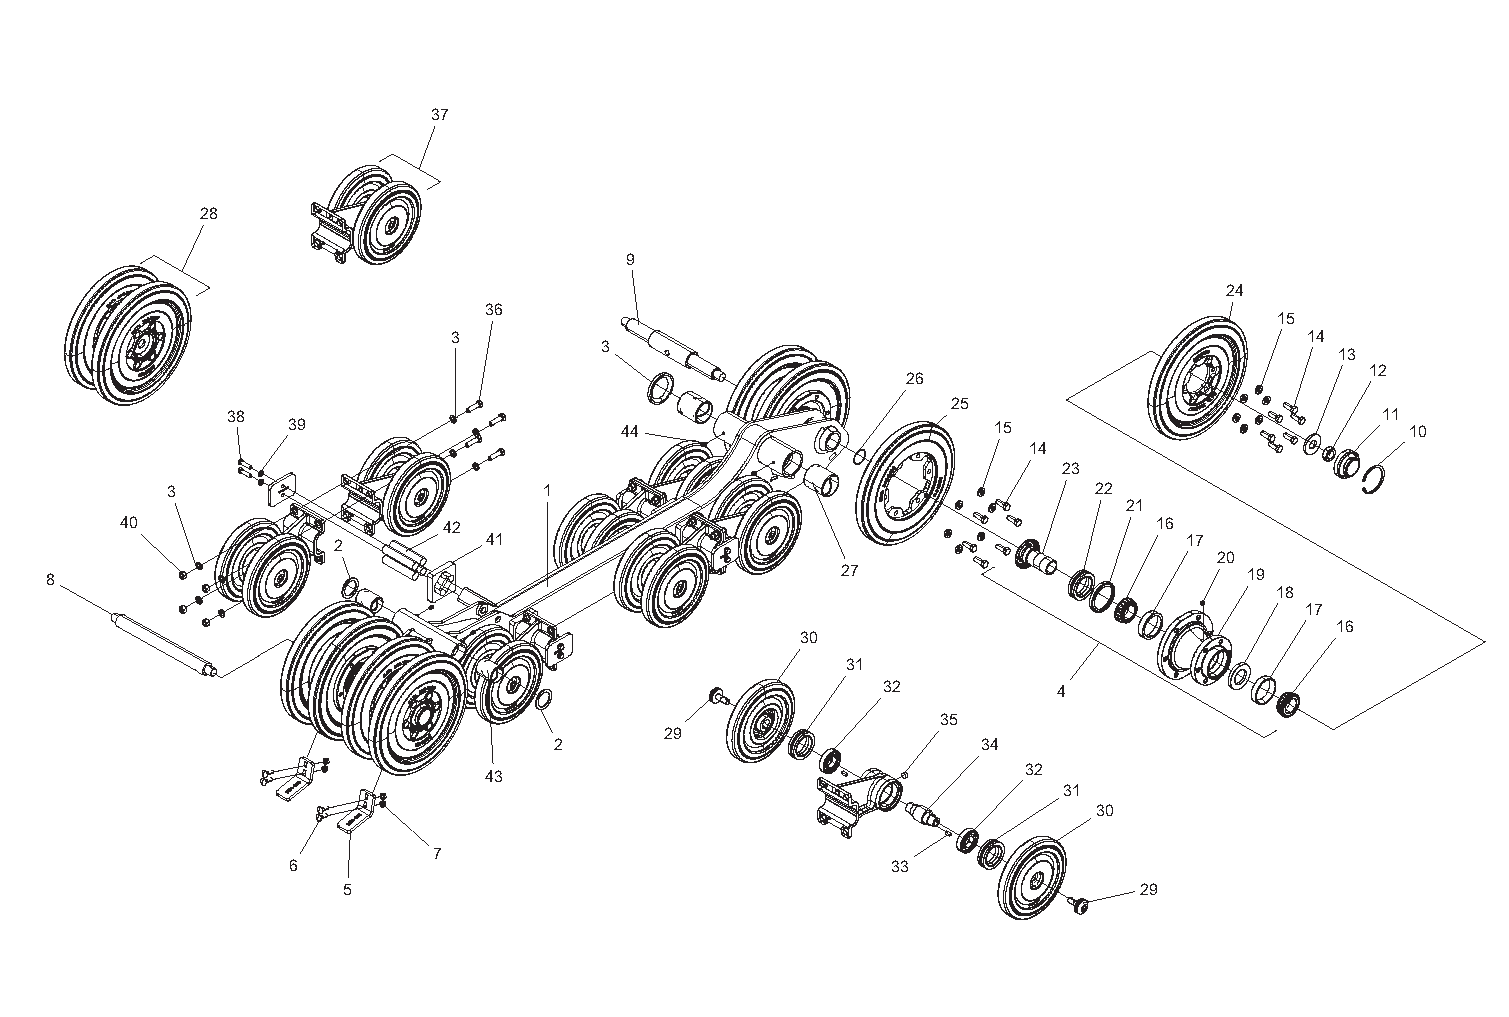 Diagram 5-3A Undercarriage Assembly - Left Side